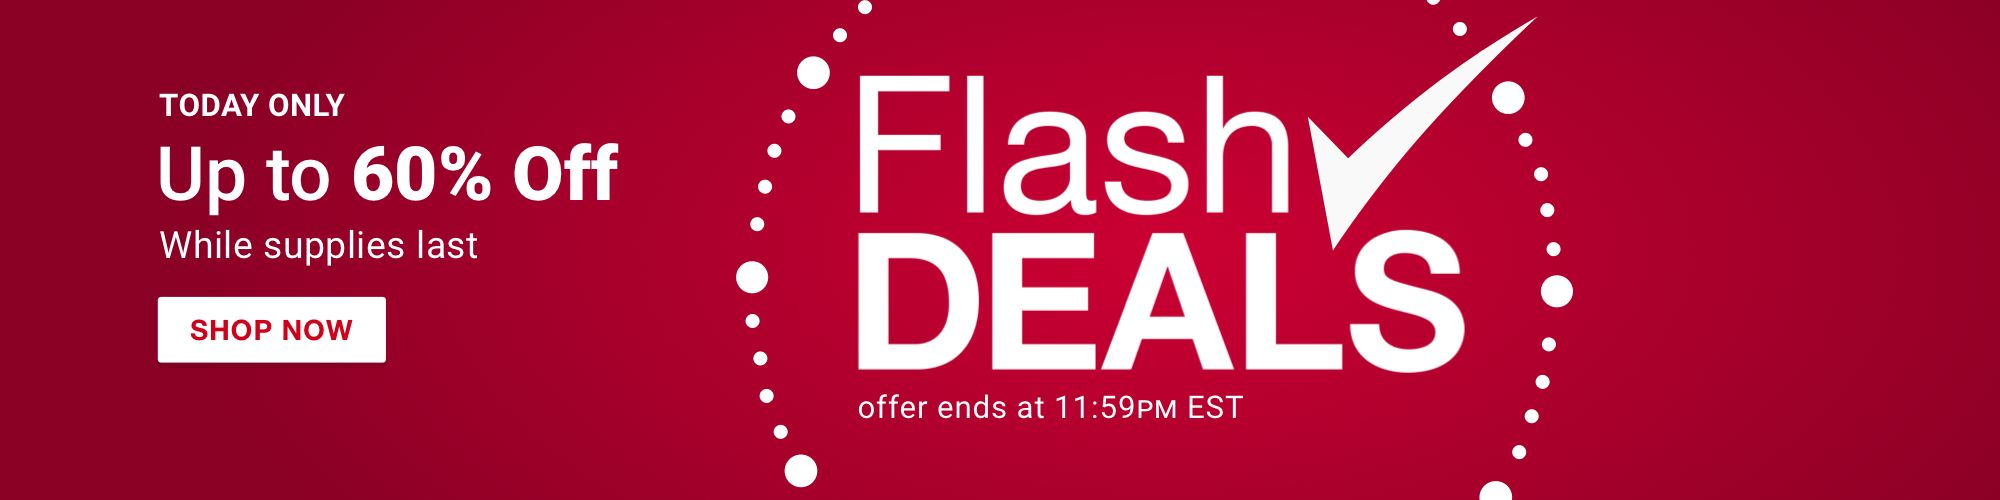 Flash Deals. Today Only. Up to 60 percent off. While supplies last. Ends at 11 59 PM. Click to shop now.